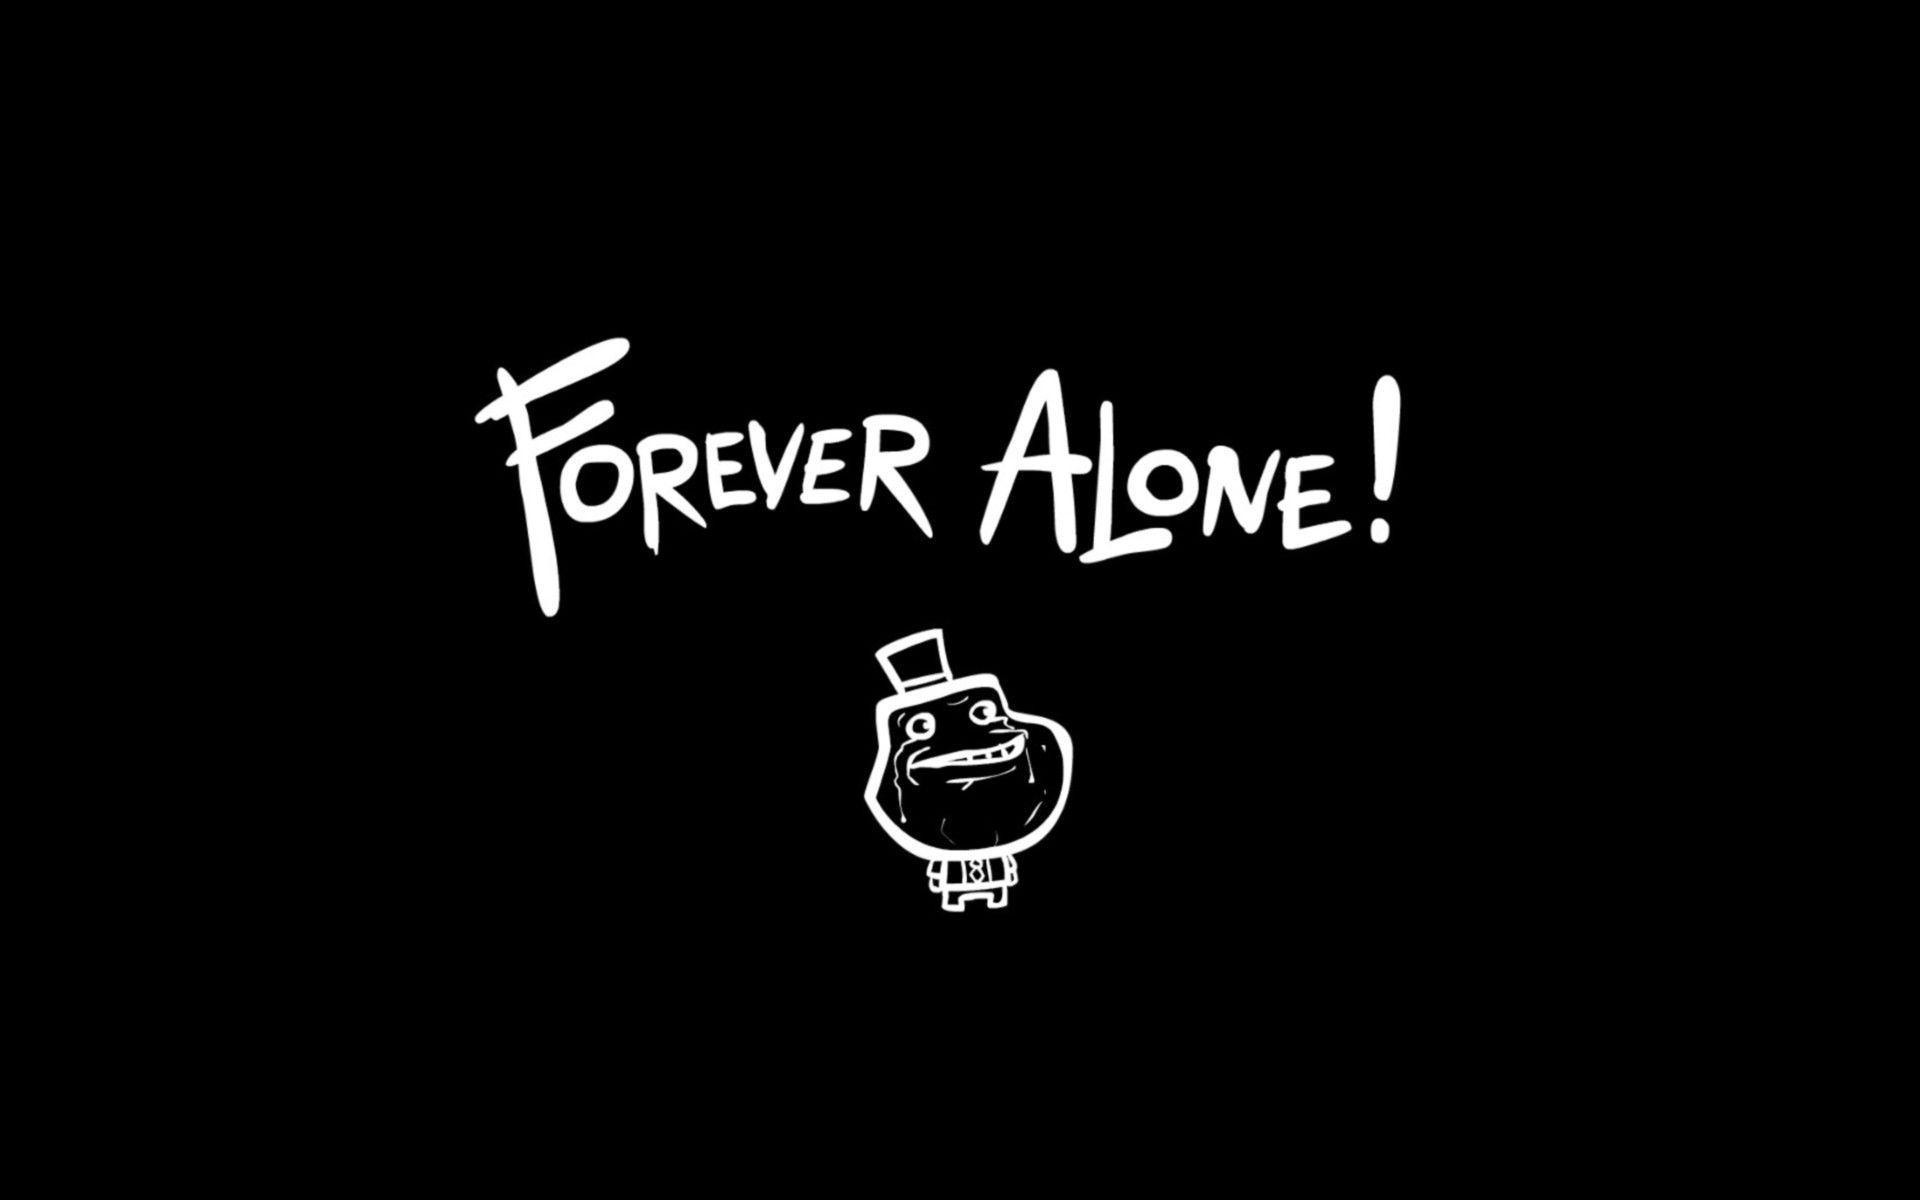 Forever Alone Wallpapers - Wallpaper Cave